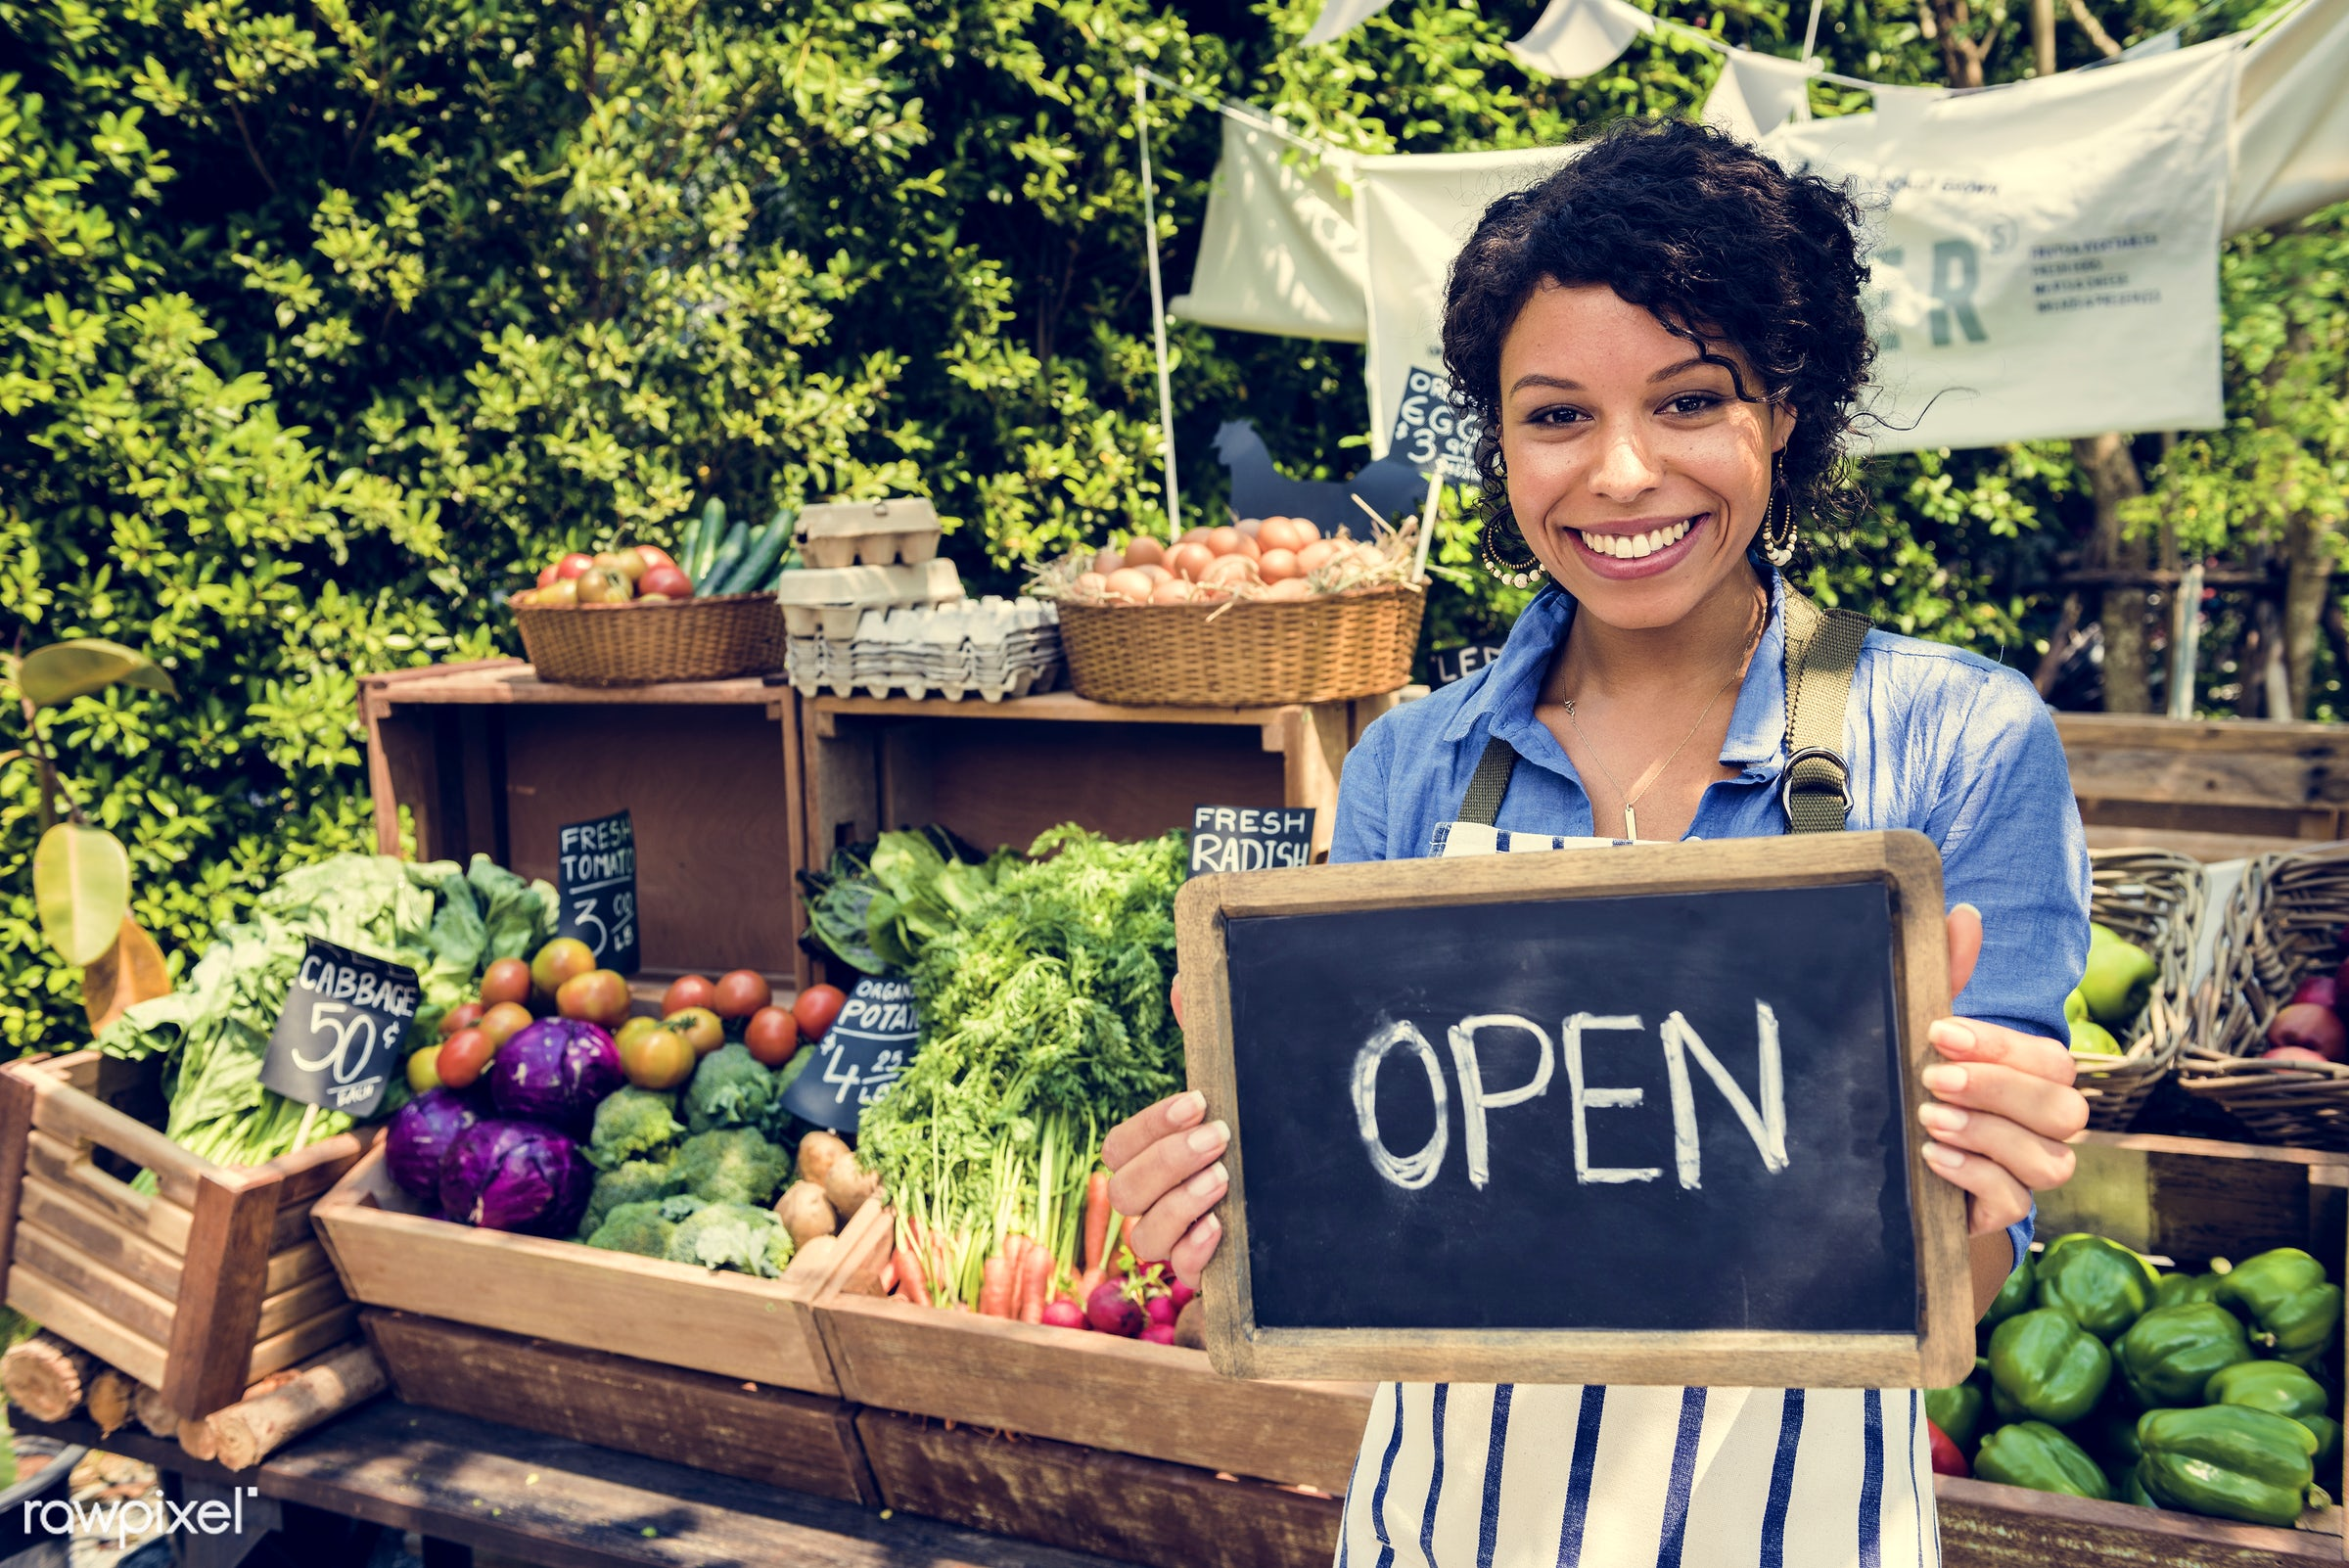 grocery, shop, tomato, store, holding, bell pepper, egg, open, farmer, woman, cheerful, smiling, fruit, african descent,...